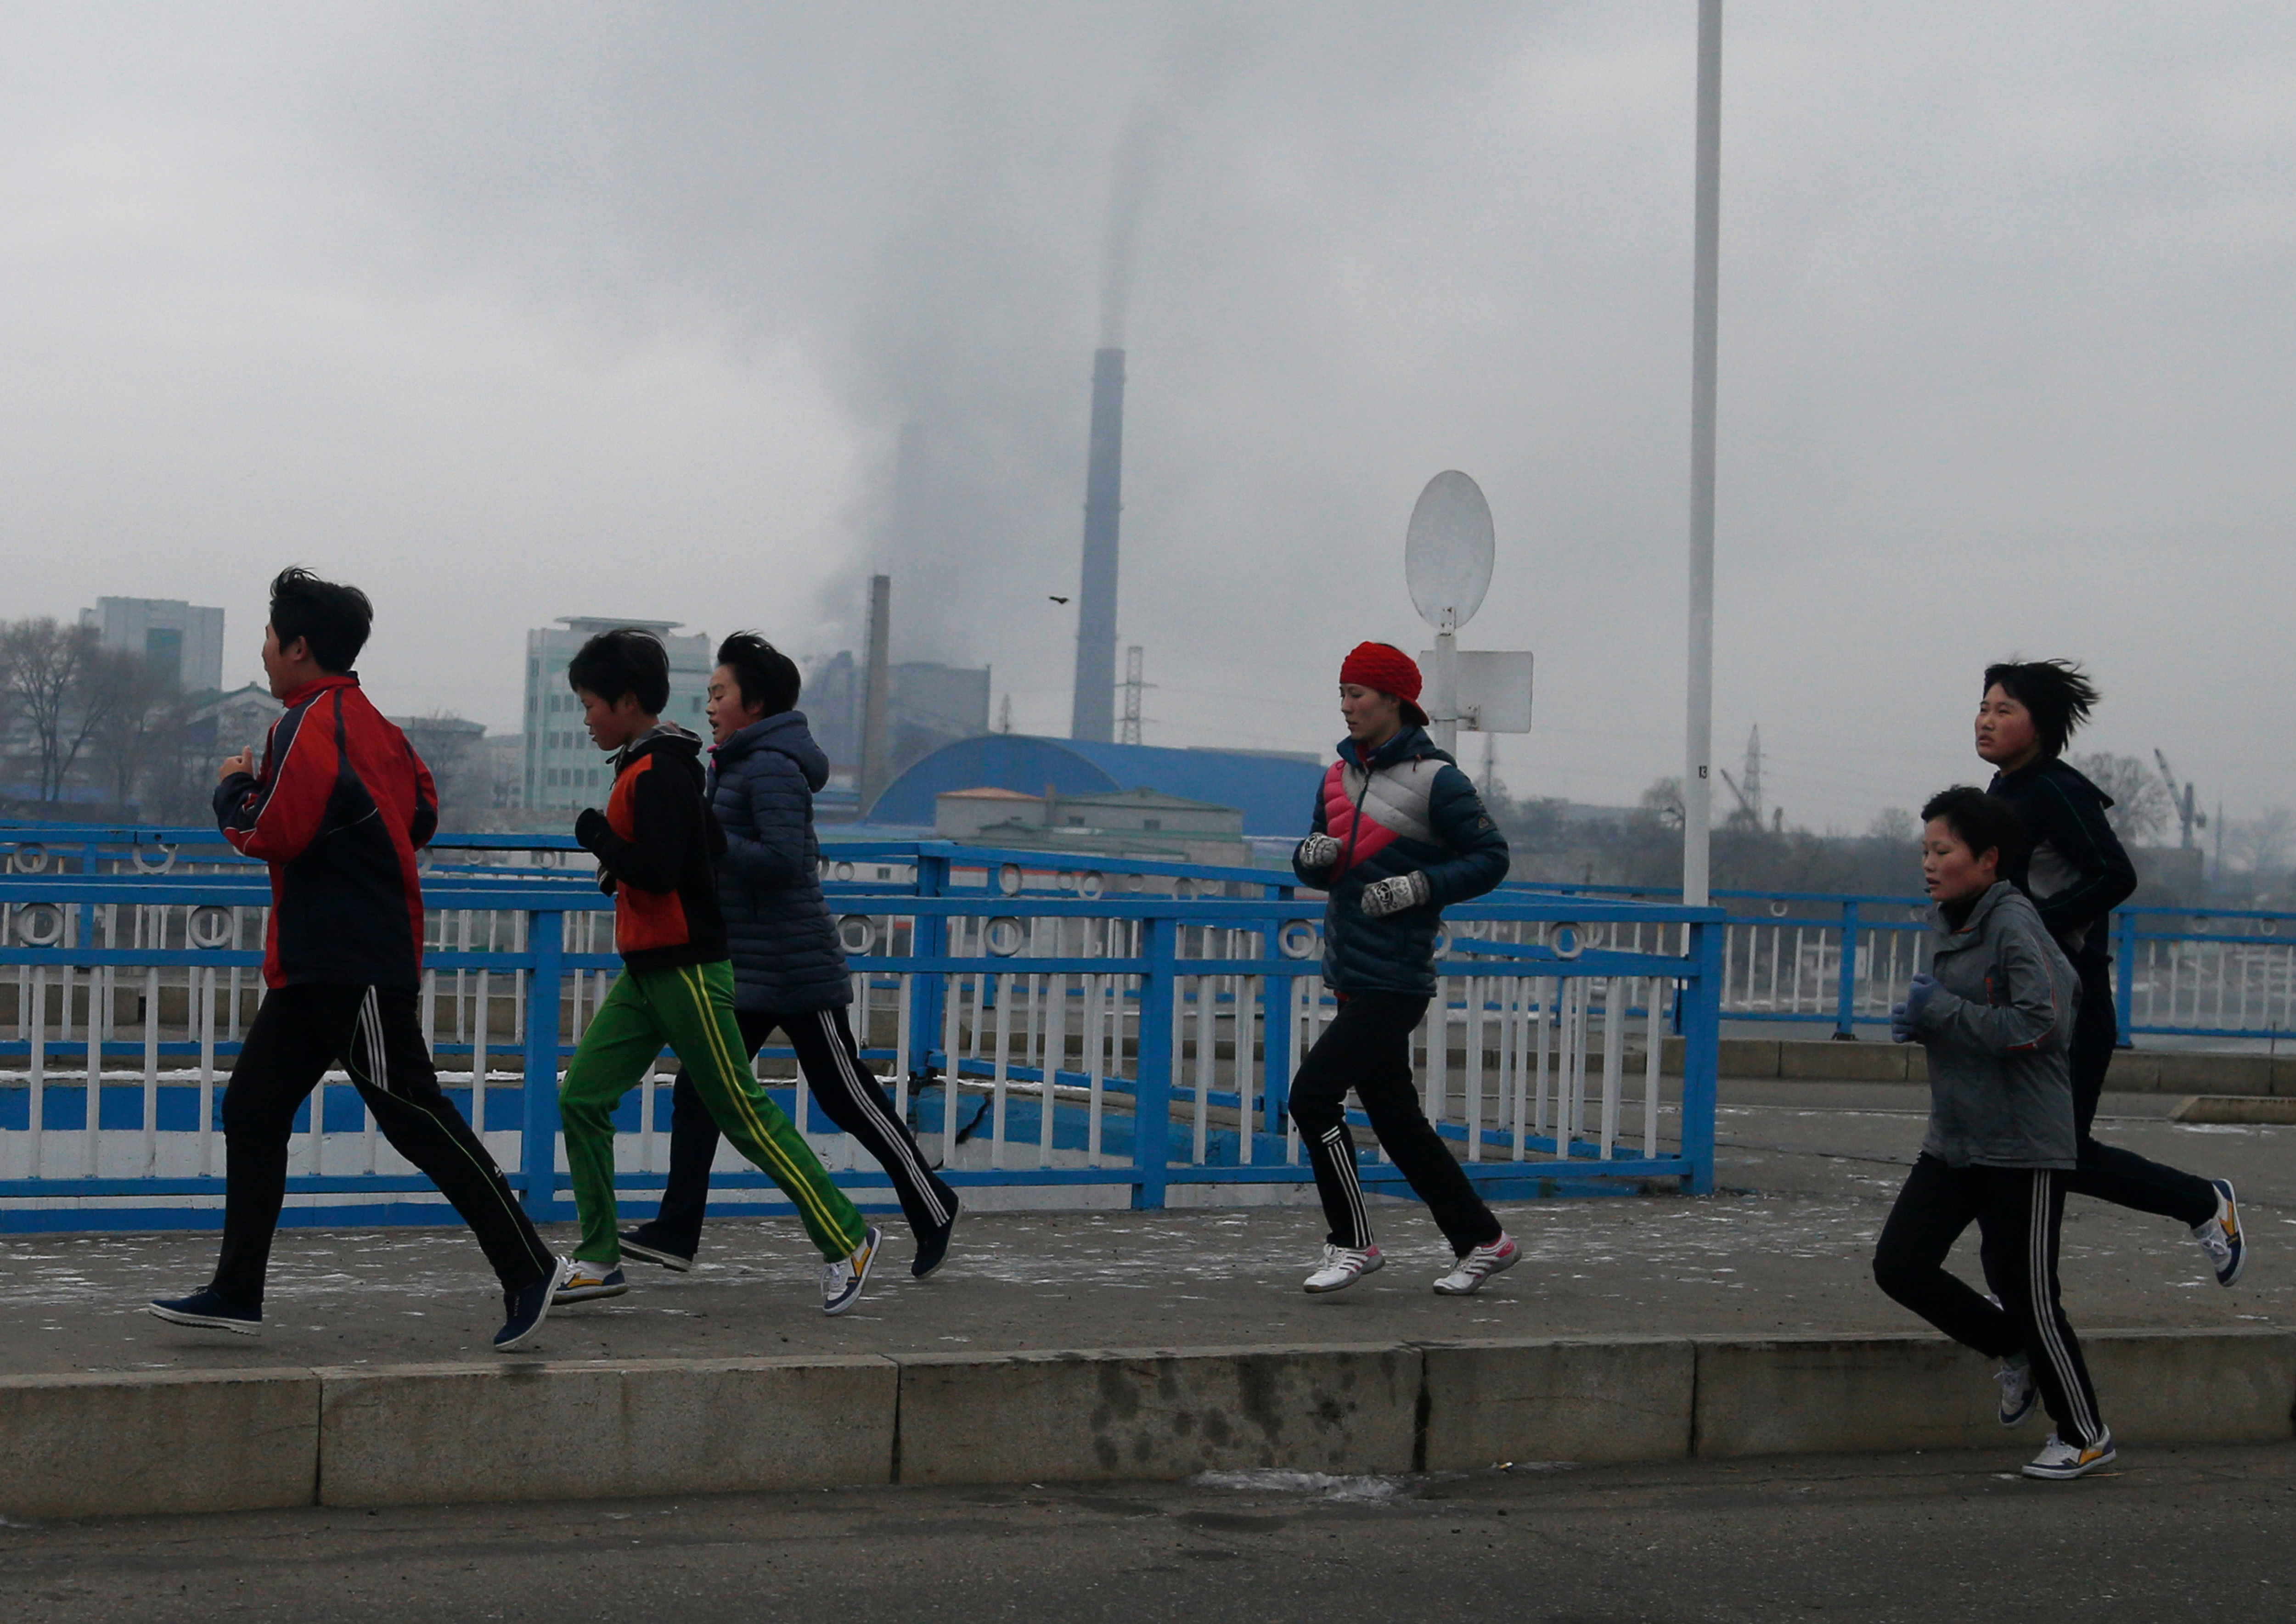 North Korean youths take their morning run as smoke billows from the chimneys of Pyongyang Power Plant in the background in Pyongyang, North Korea, on Dec. 15, 2018.